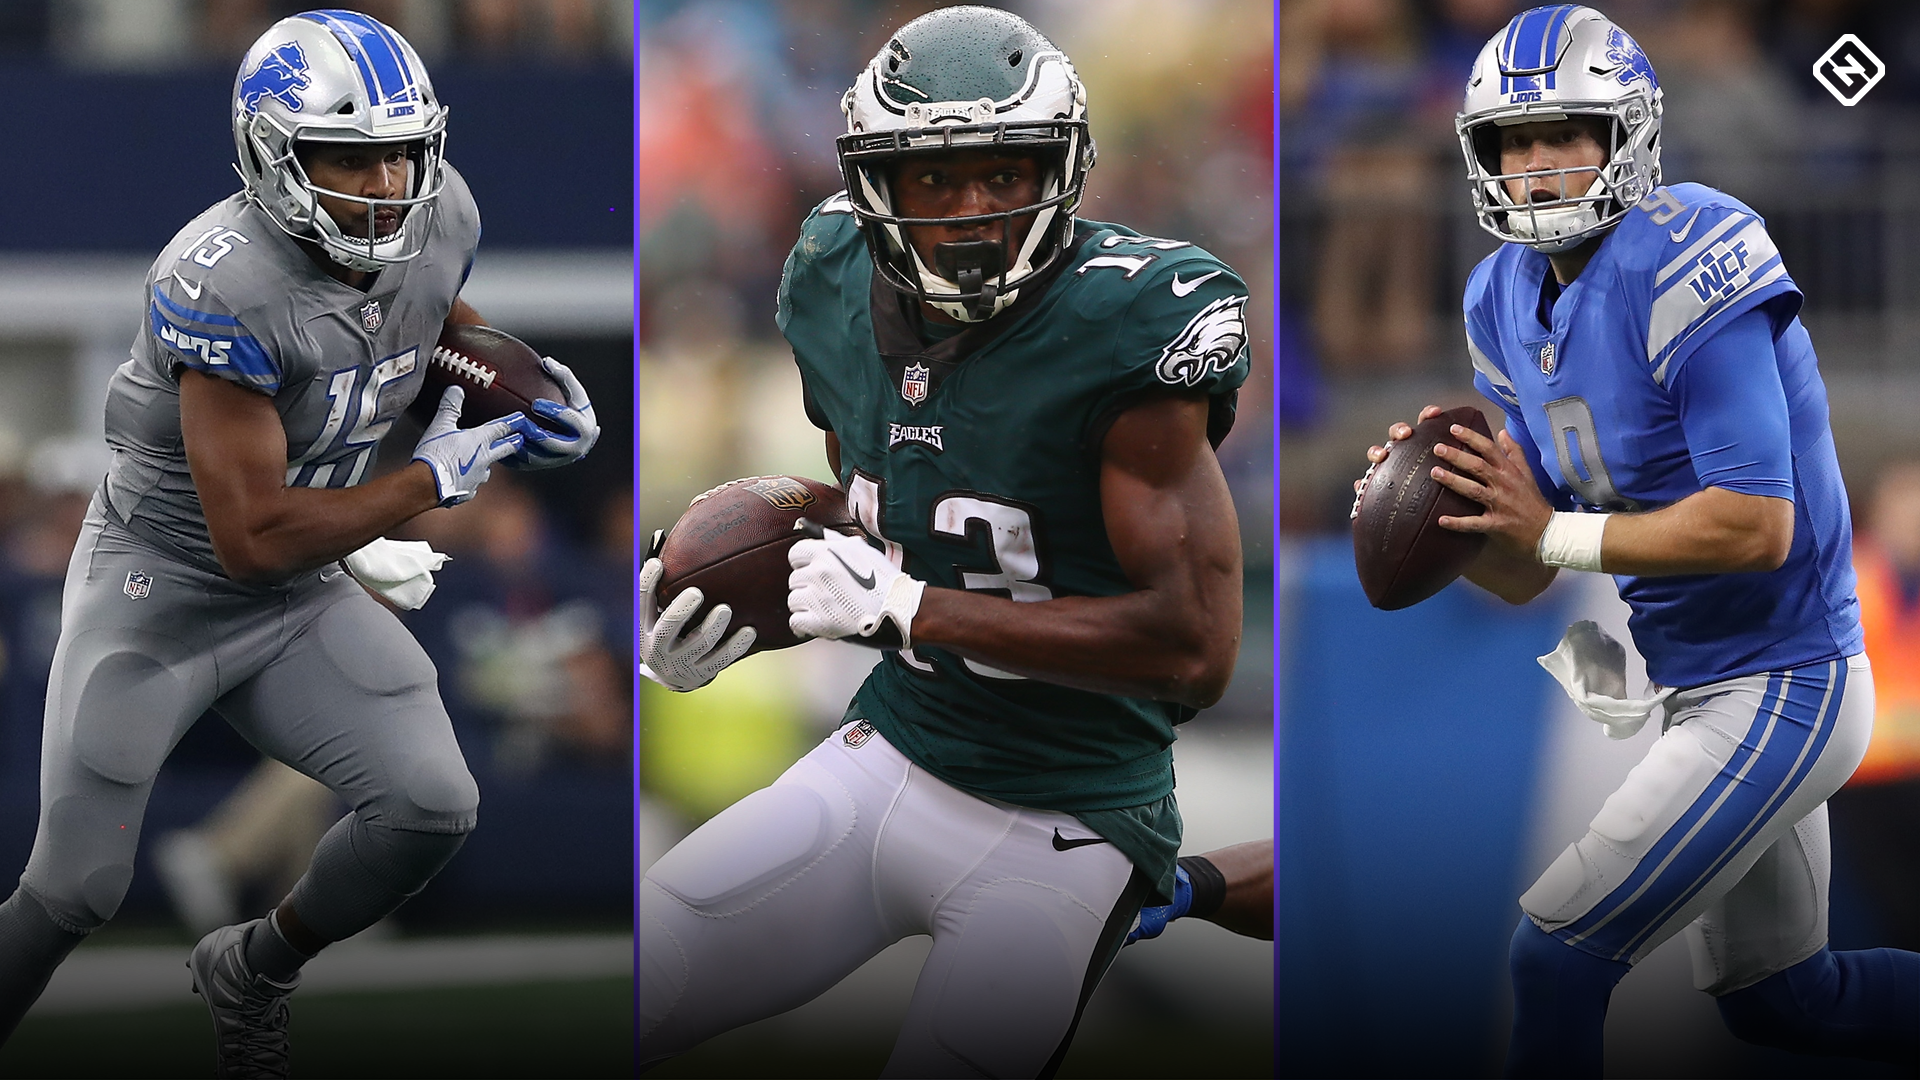 Fantasy Football Updates: Golden Tate trade to the Eagles impacts his fantasy value, Nelson Agholor, Matthew Stafford